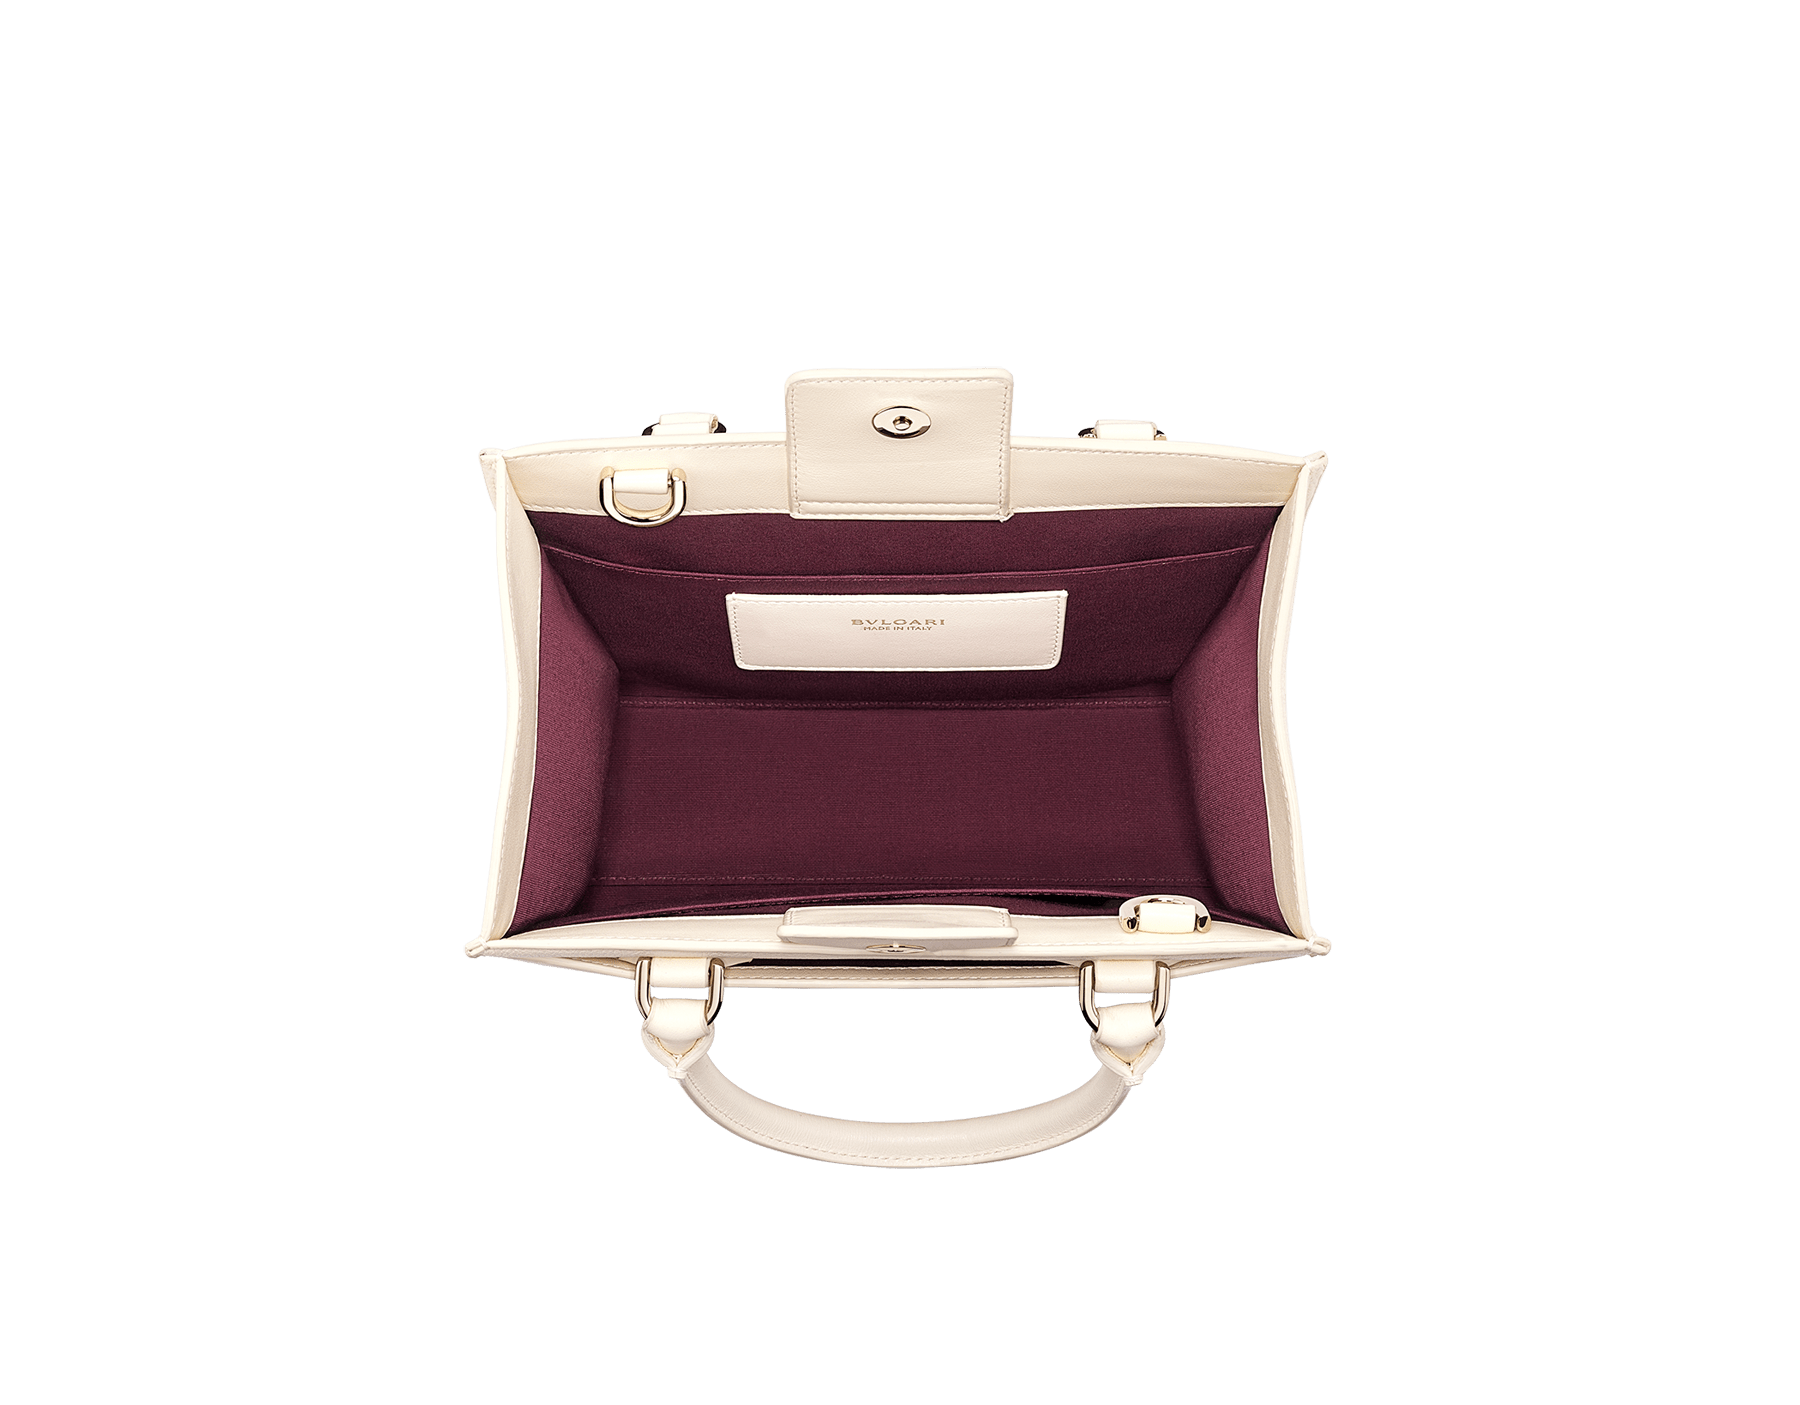 """Bvlgari Logo"" small tote bag in Ivory Opal white calf leather, with Beet Amethyst purple grosgrain inner lining. Bvlgari logo featuring light gold-plated brass chain inserts on the Ivory Opal white calf leather. BVL-1159-CL image 4"